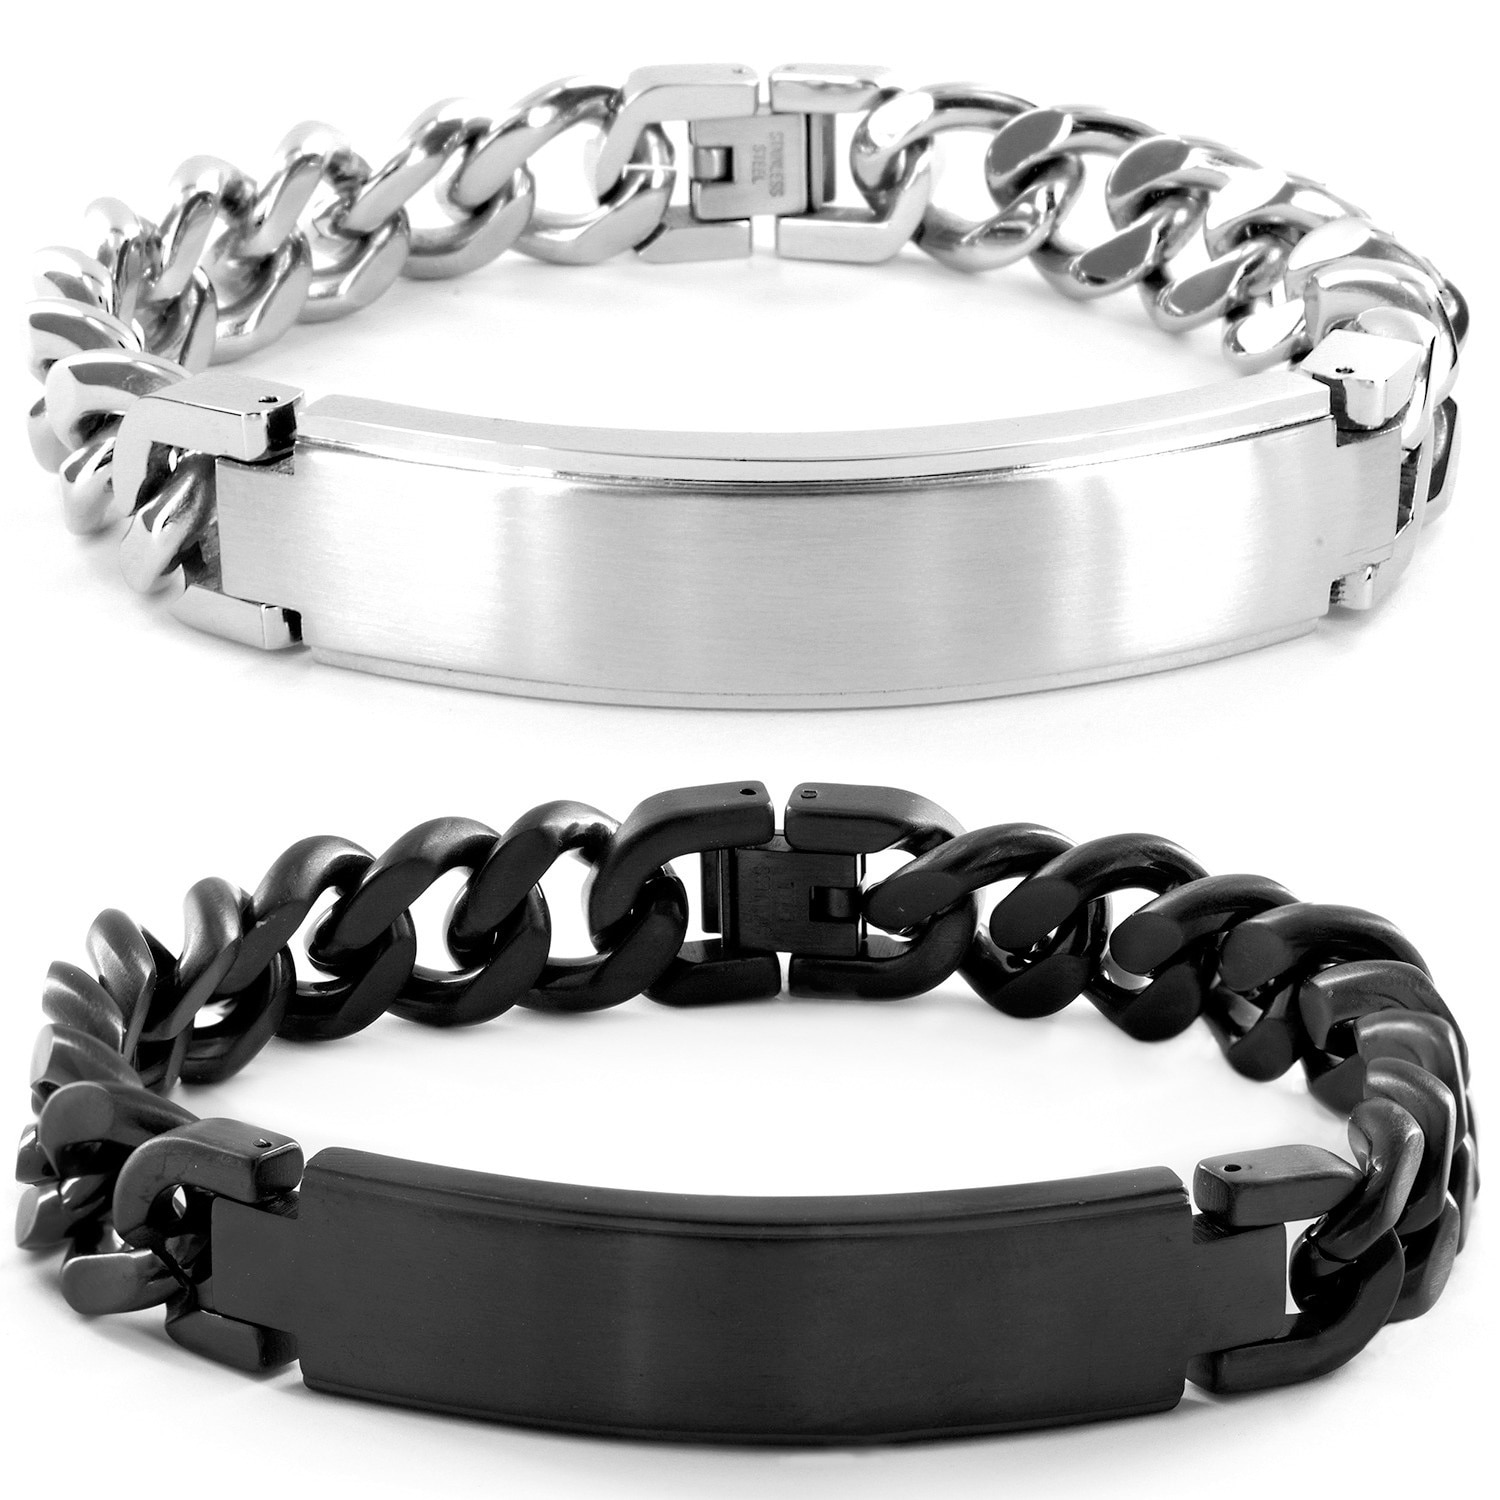 steel design wide checkered bracelet impl with inch identification curb home link stainless cross shopcart sabrinasilver bracelets id